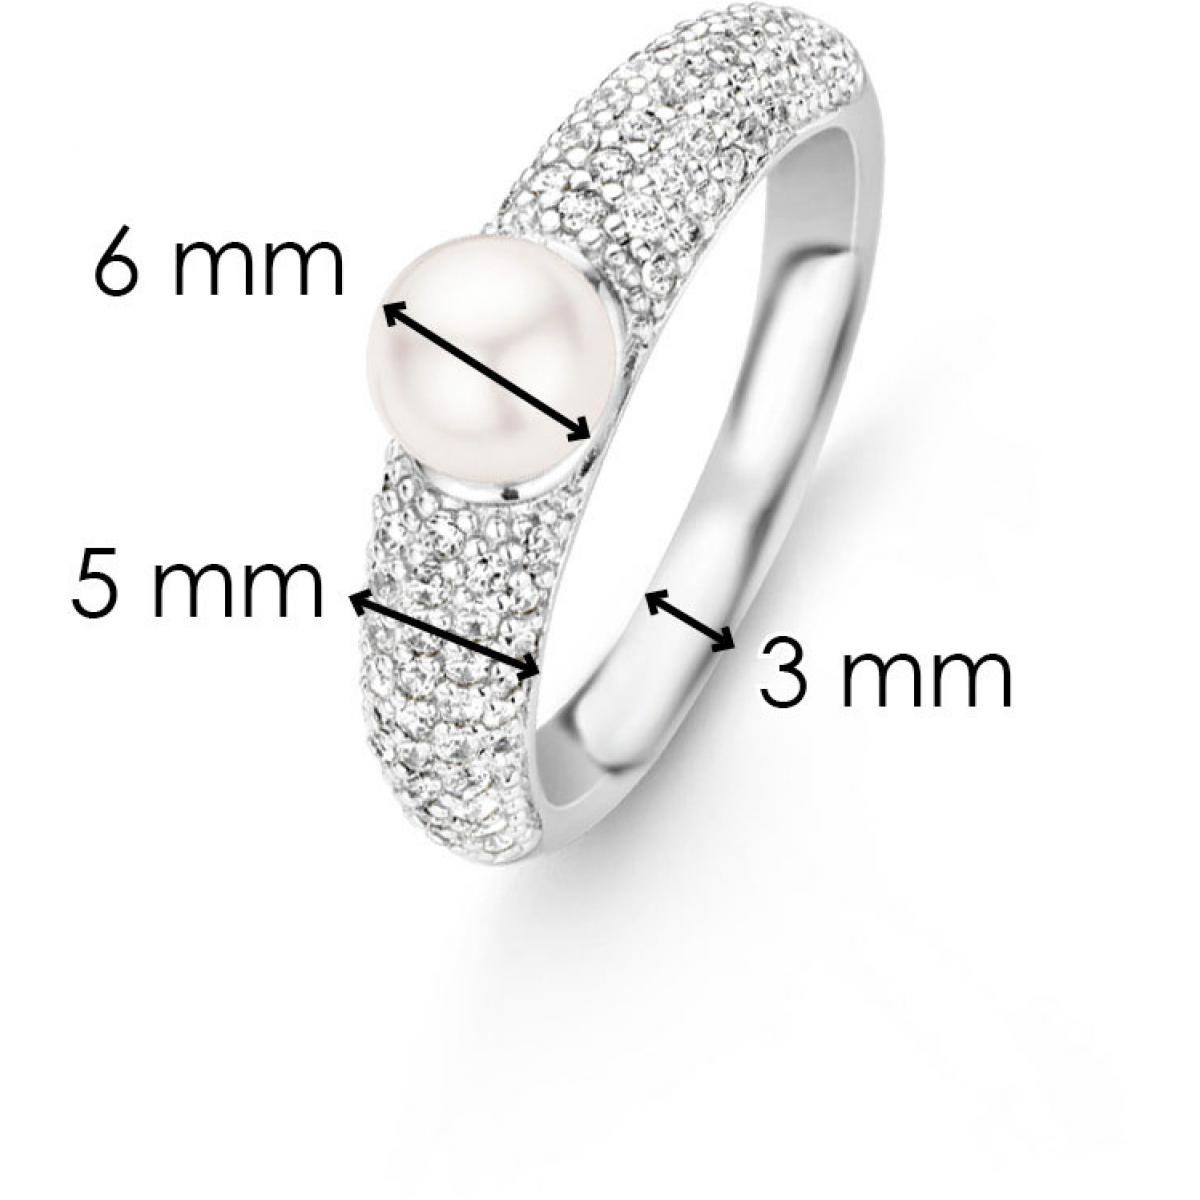 Ti Sento Bague Liberation 12091PW - Rond Sertie Blanche Femme 12091PW-52